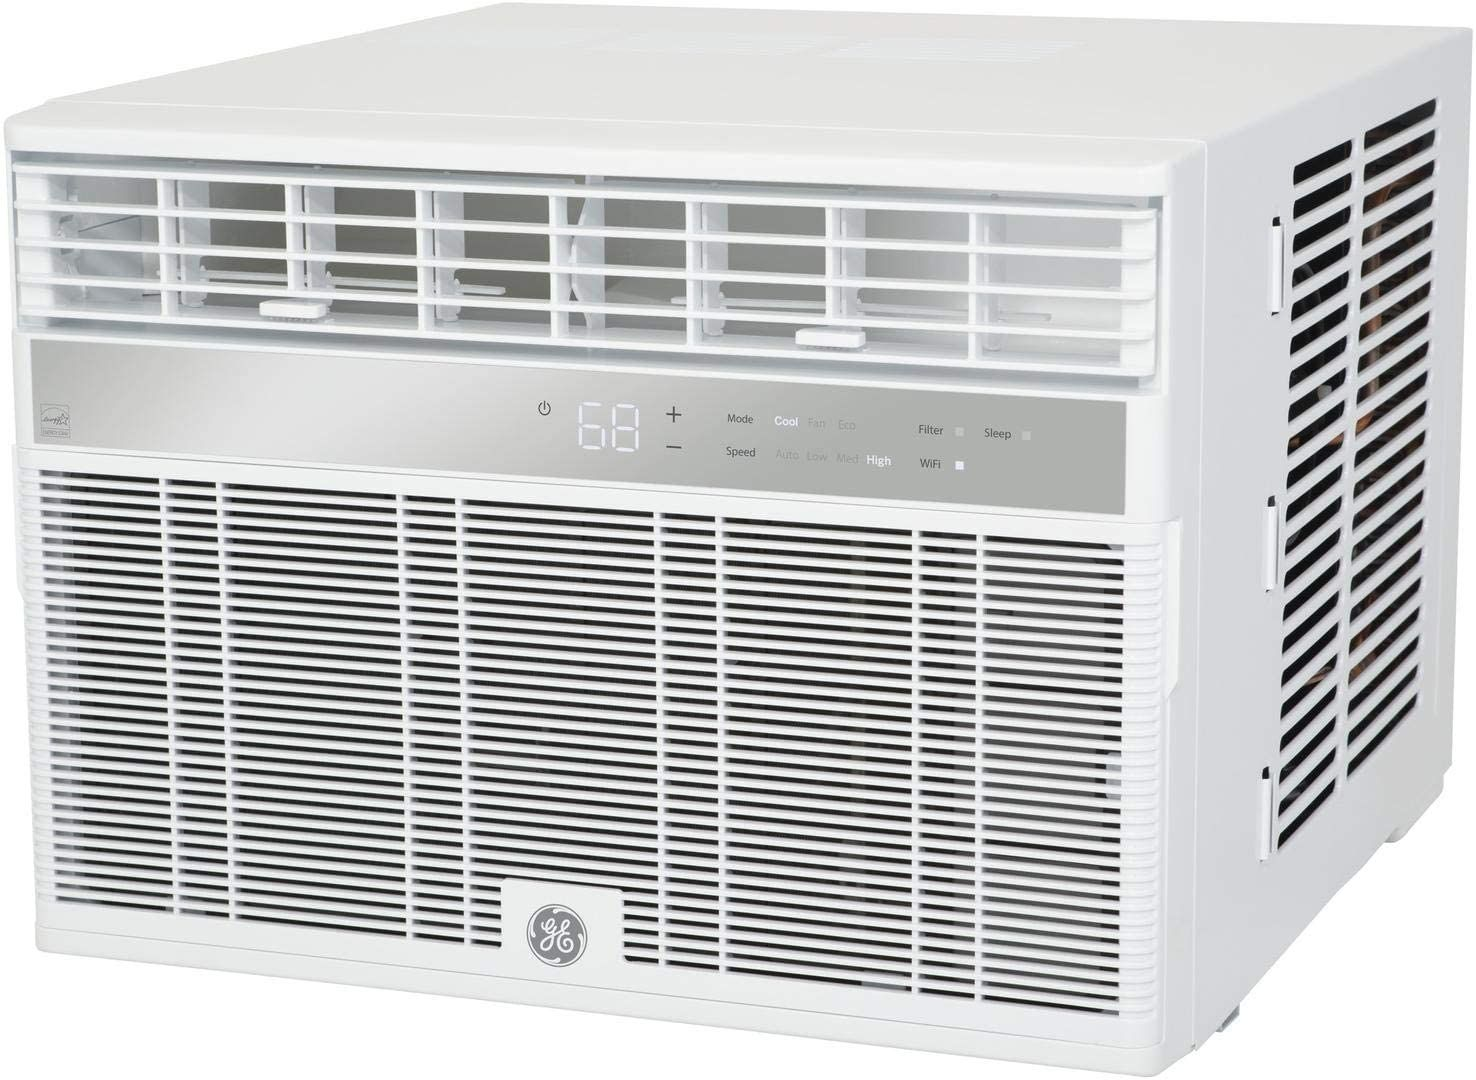 GE AHY08LZ Smart Window Air Conditioner with 8000 BTU